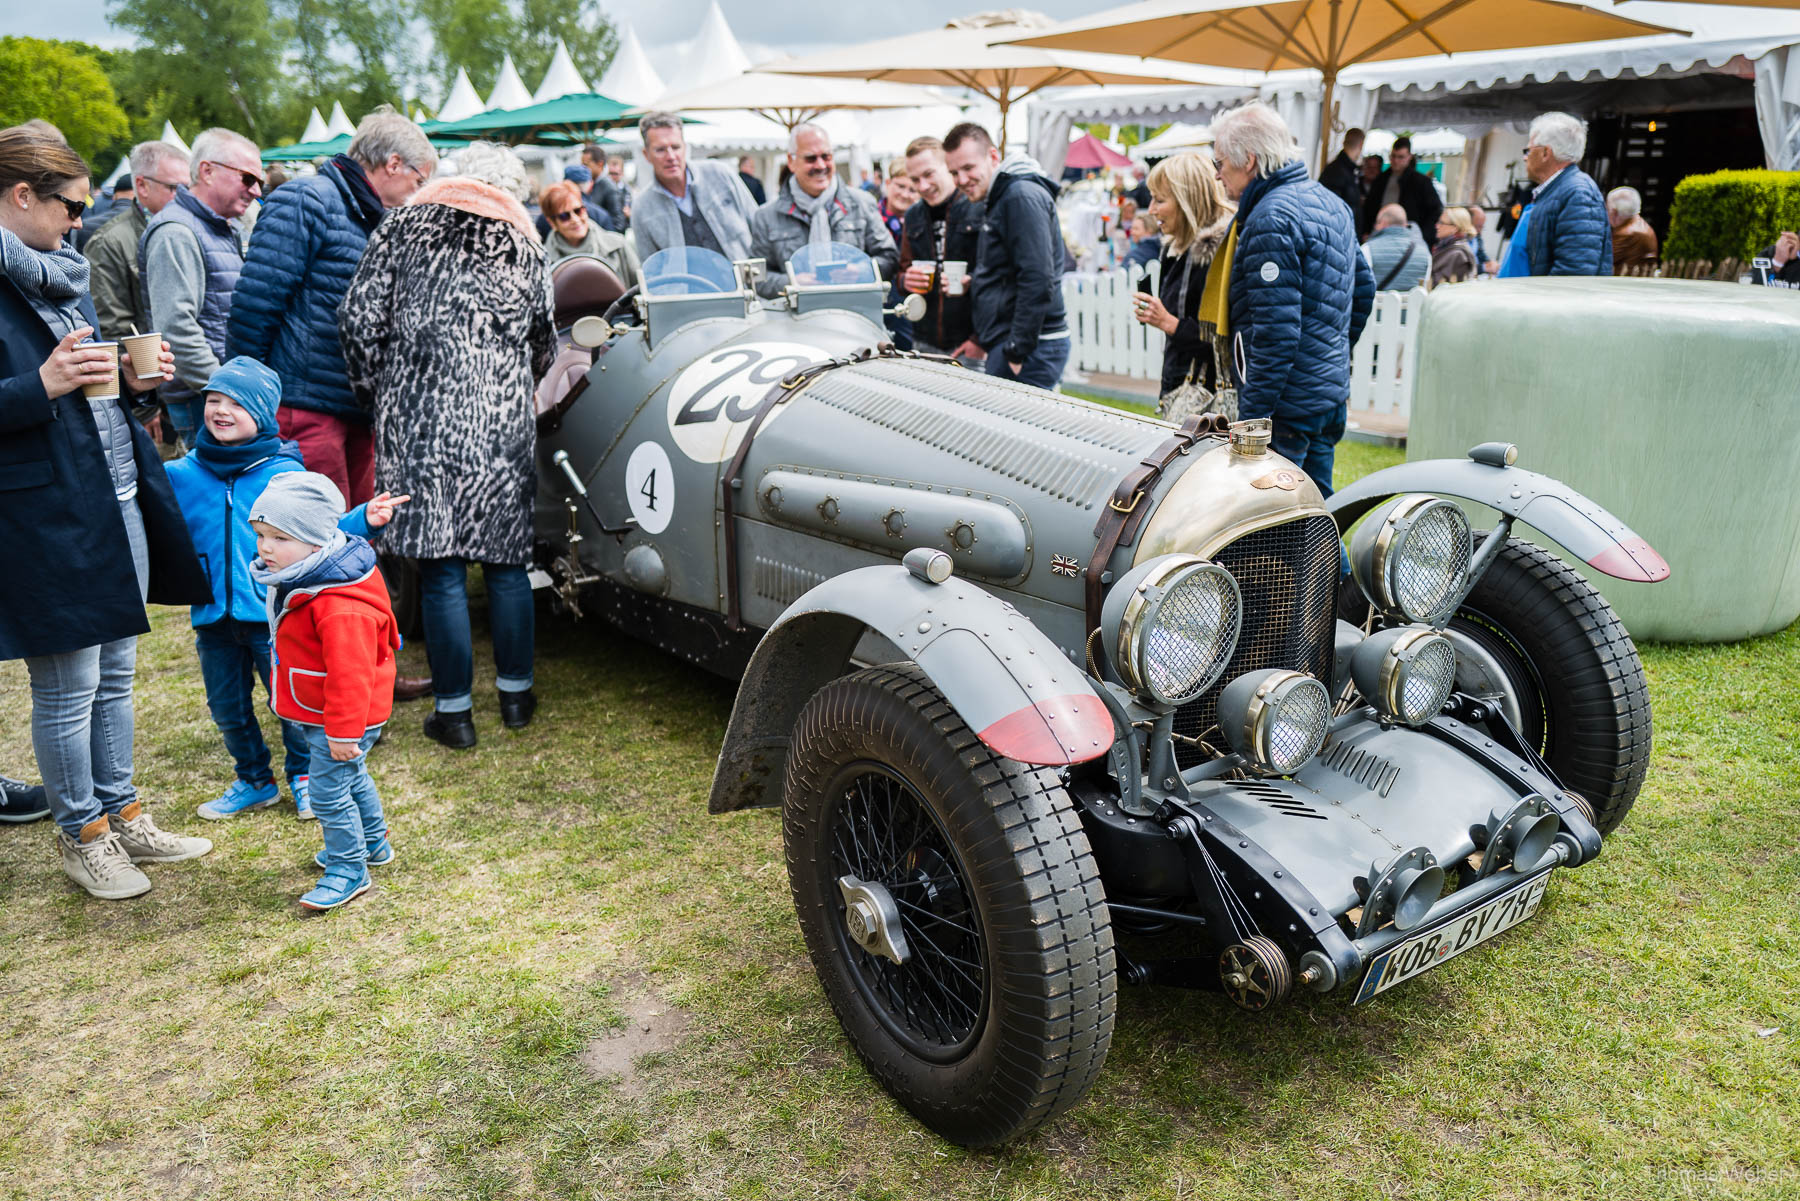 Vintage Race Days 2019 in Rastede, Fotograf Thomas Weber